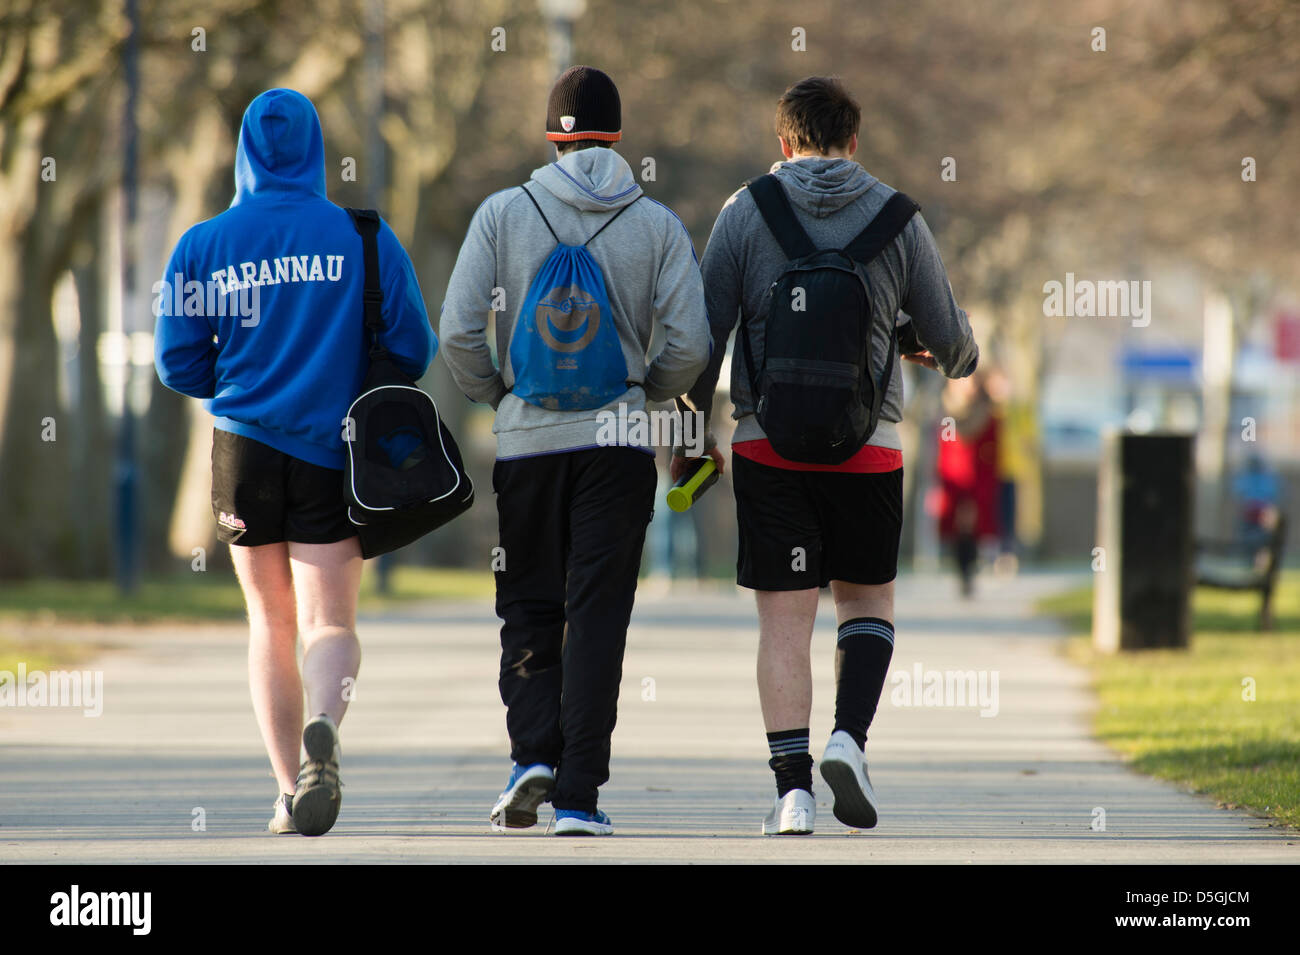 Rear view of three young men with kit bags on their backs walking to or from a sports training session at University, - Stock Image